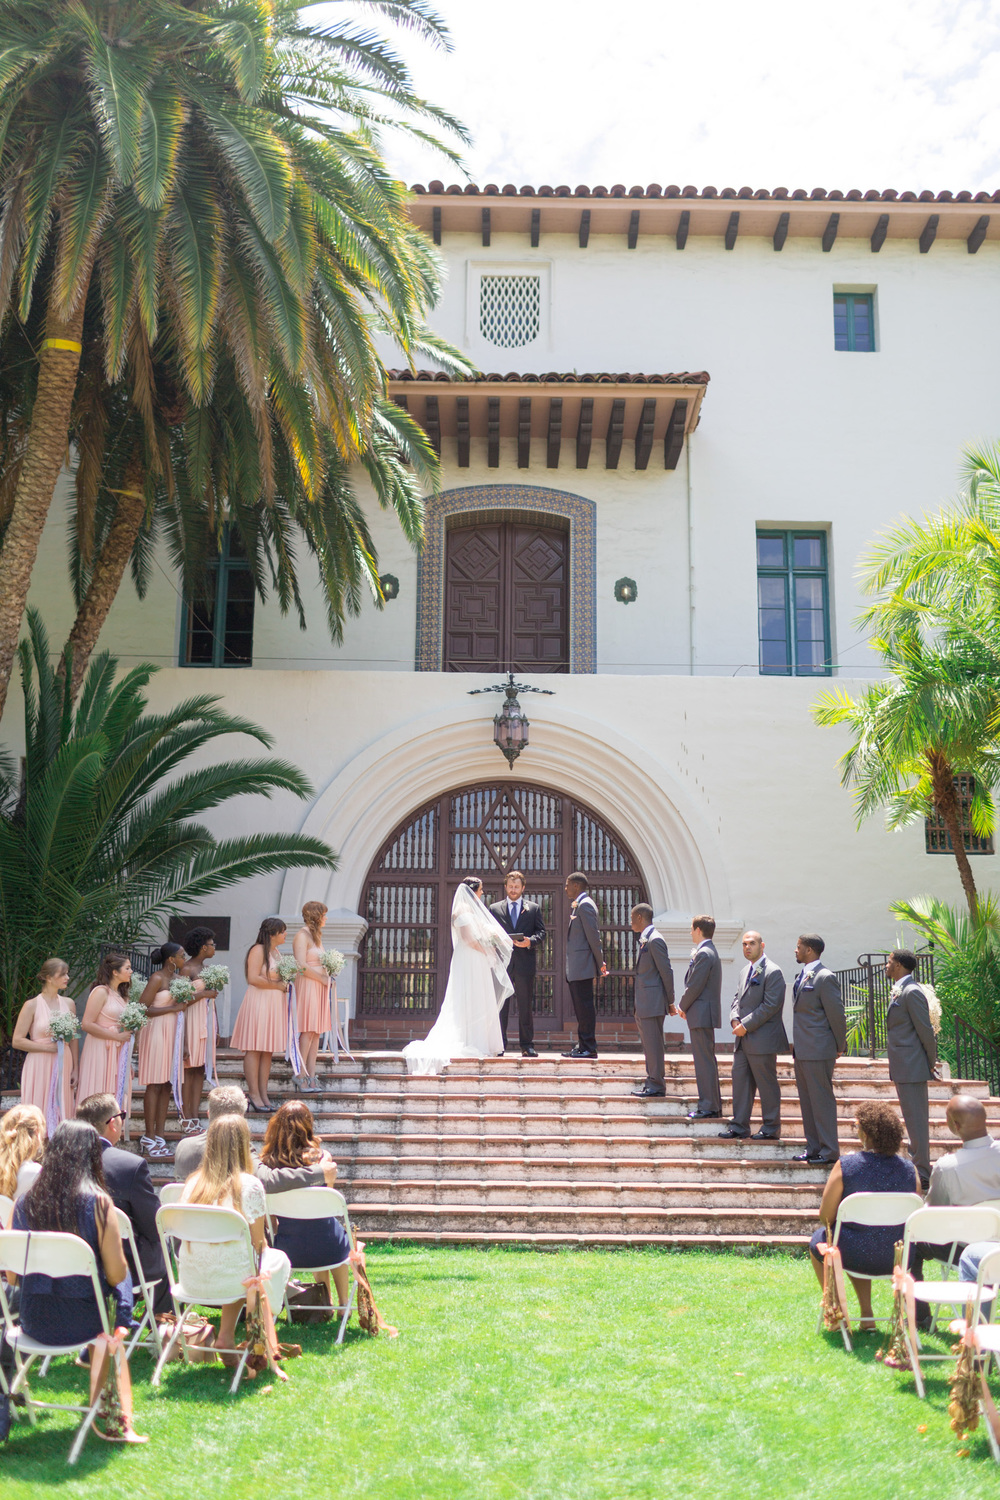 Santa-Barbara-Courthouse-Wedding_01.jpg